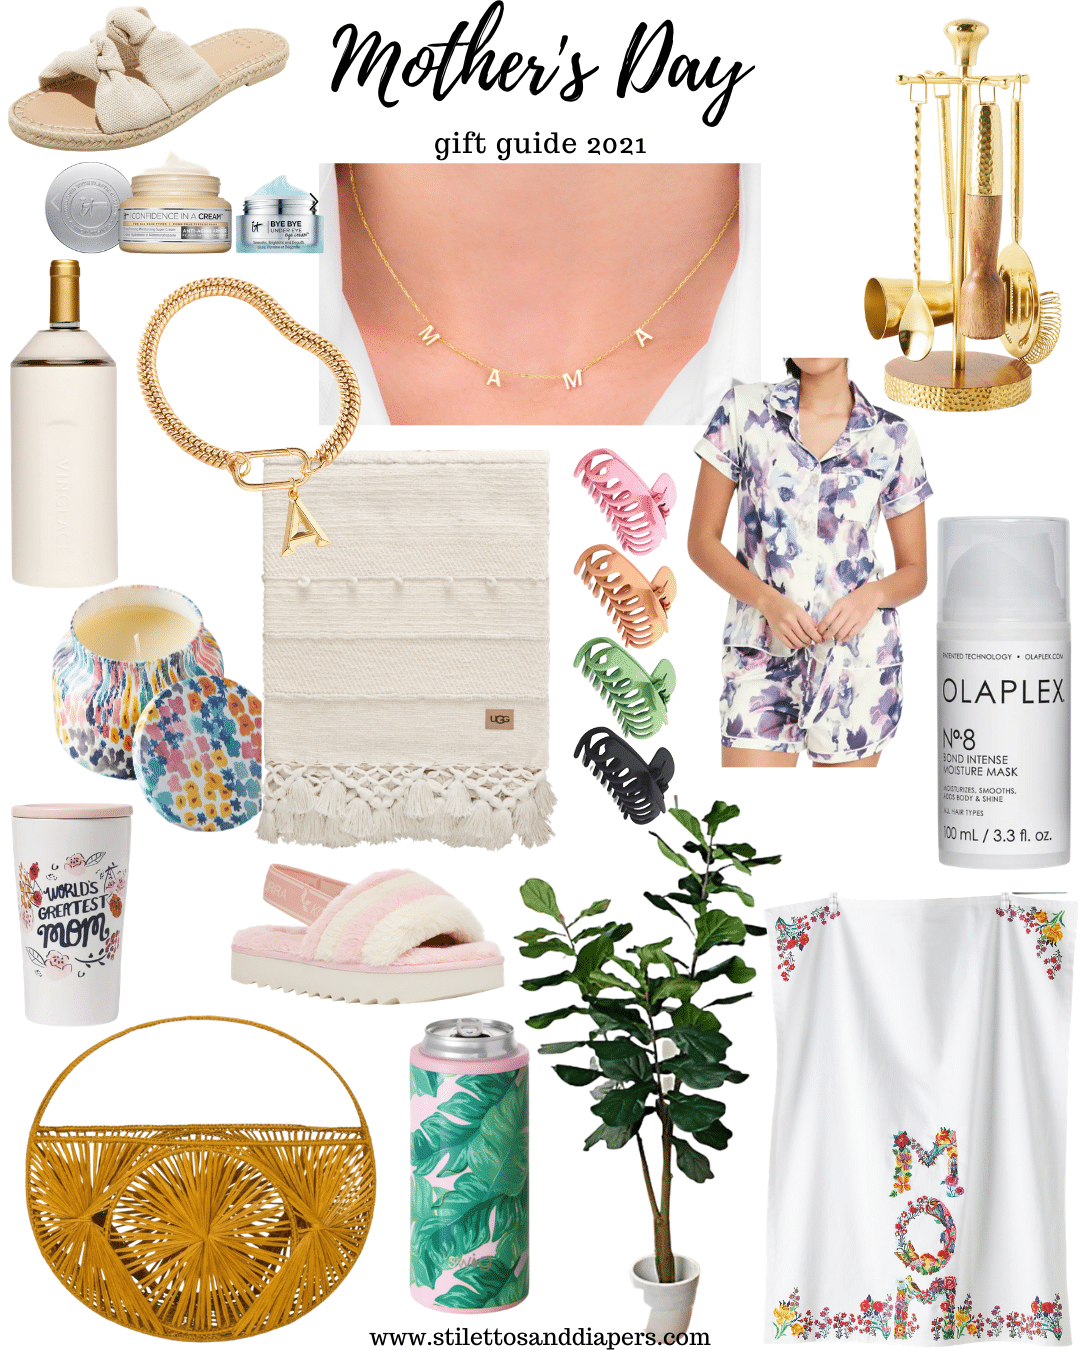 Mother's Day Gift Guide 2021, Stilettos and Diapers